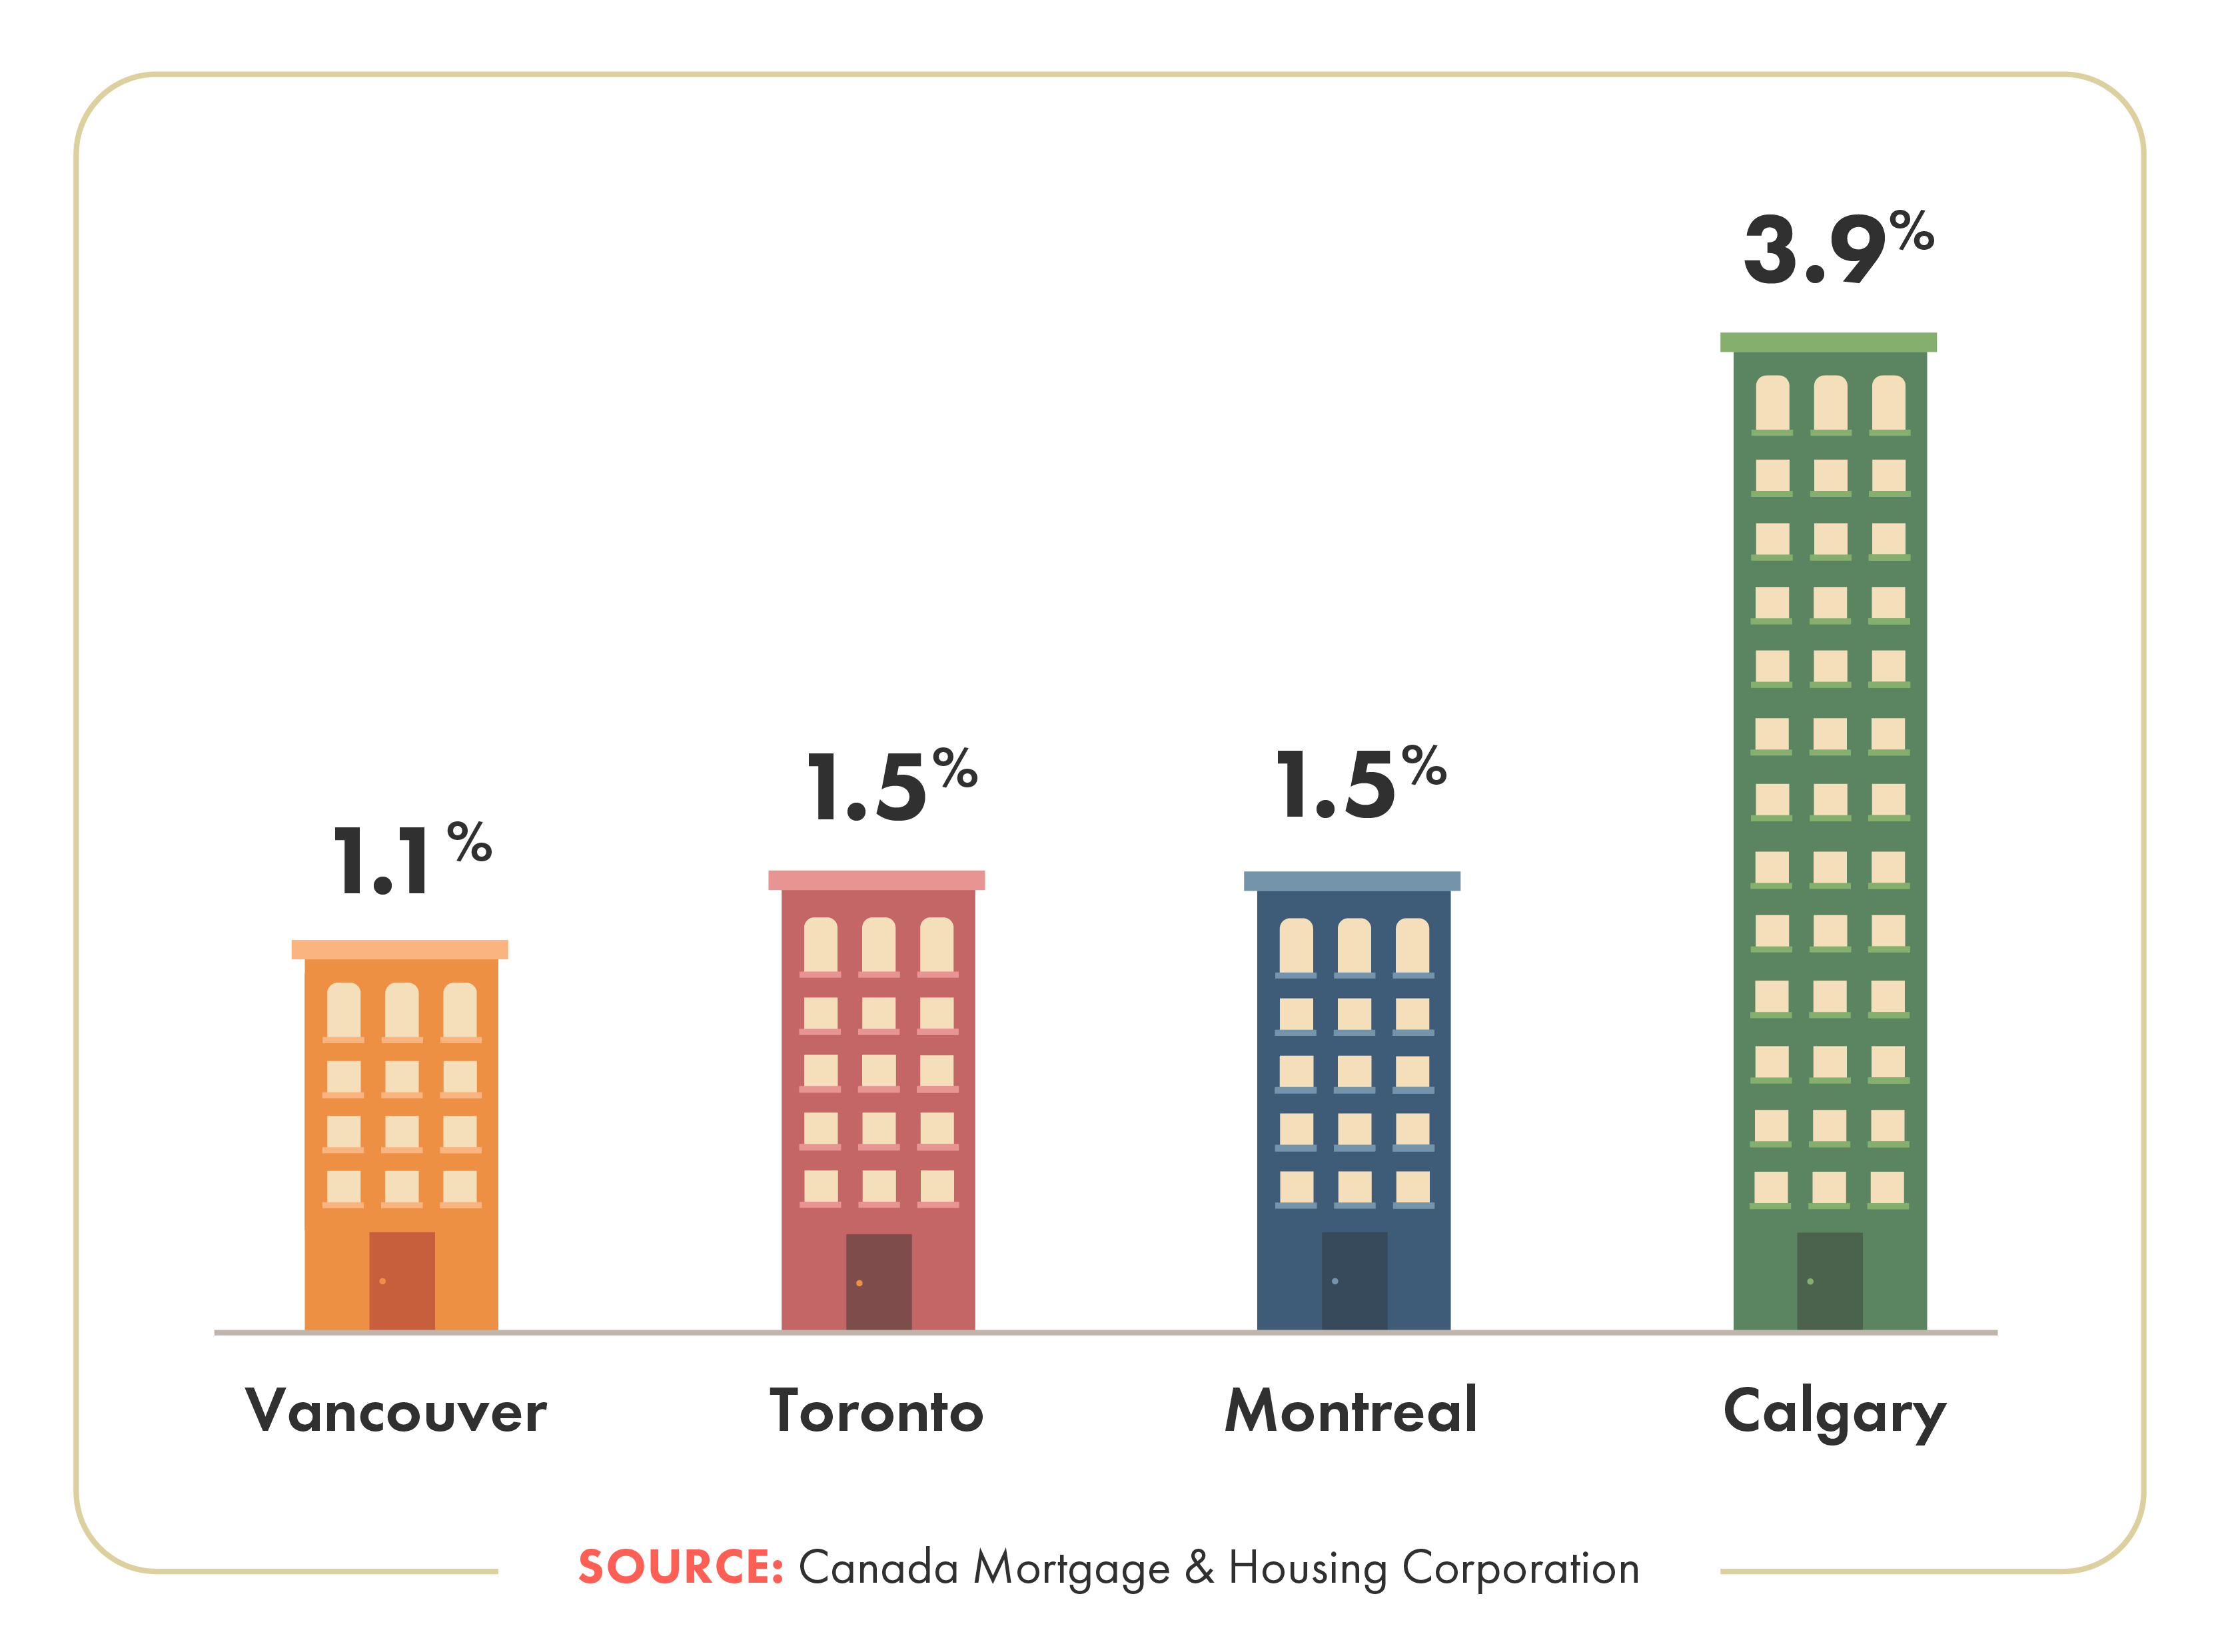 Vancouver rental vacancy rate vs other Canadian cities